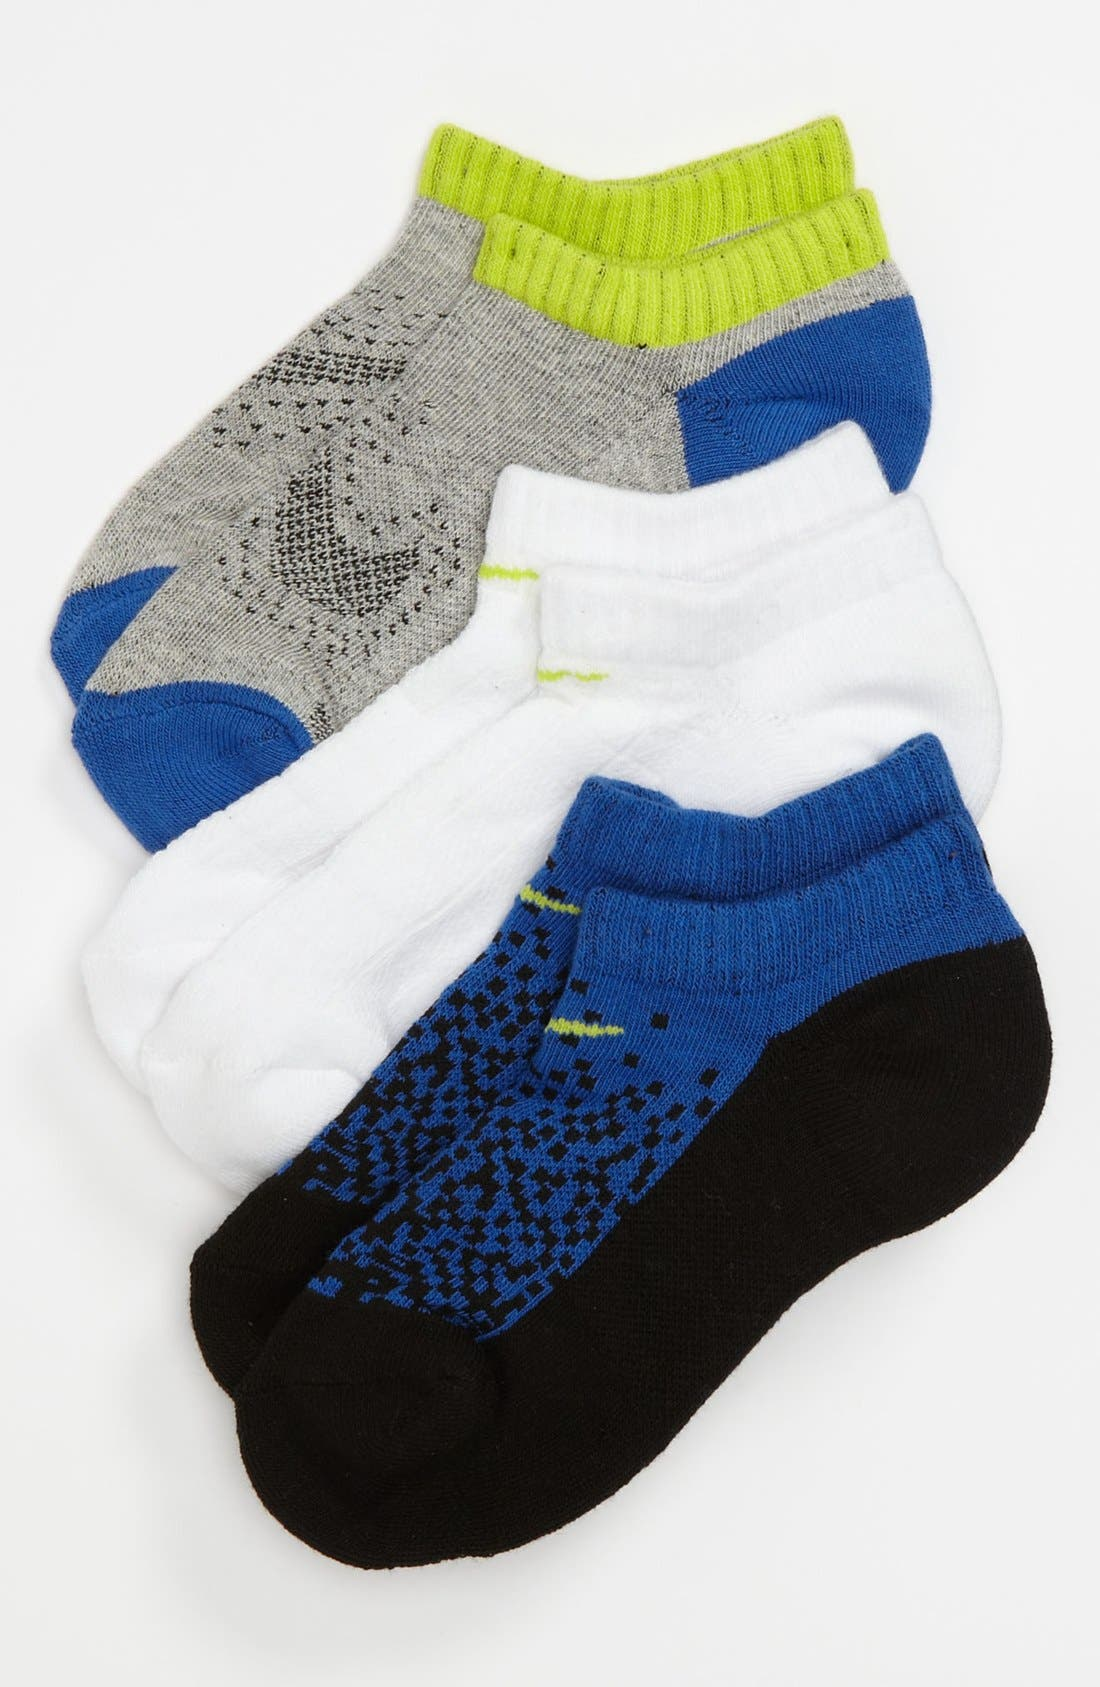 Main Image - NIKE 3 PACK GRAPHIC COTTON SOCKS